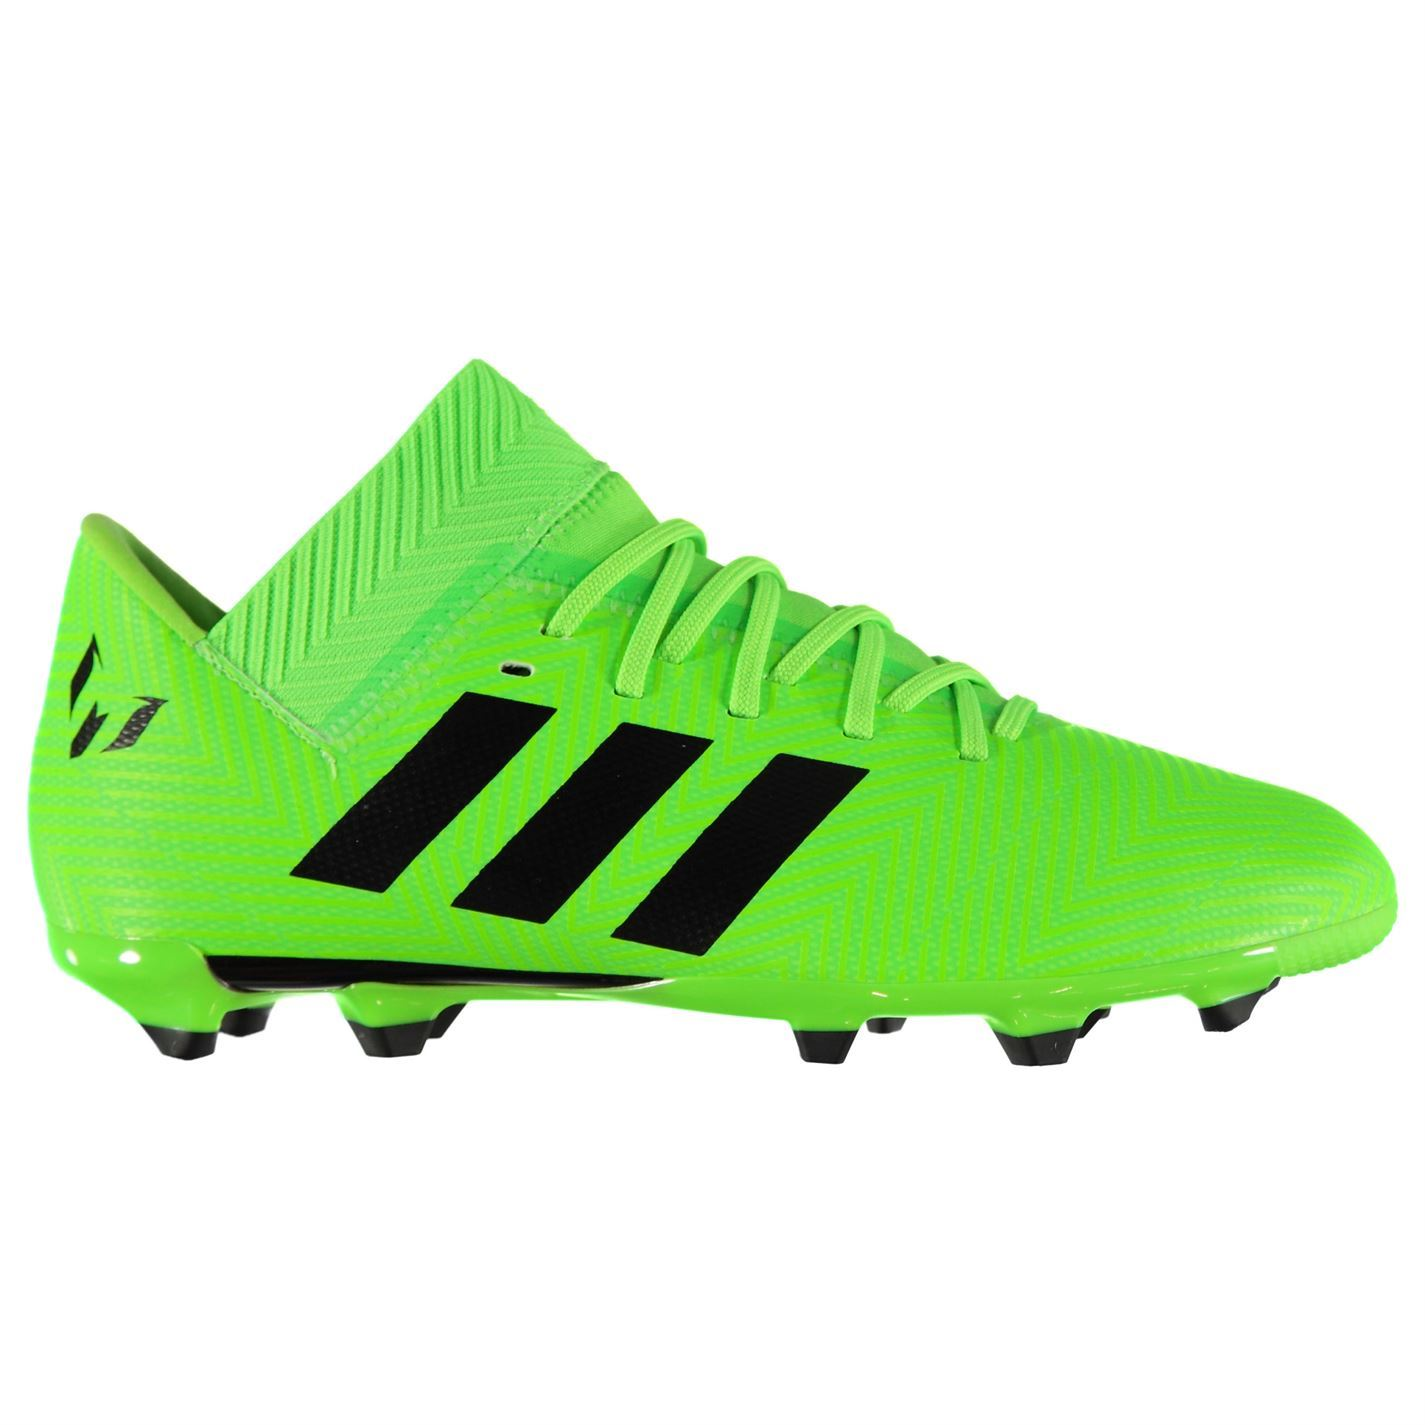 10296567 ... adidas Nemeziz Messi 18.1 Football Boots Firm Ground Juniors Green  Soccer Cleats ...